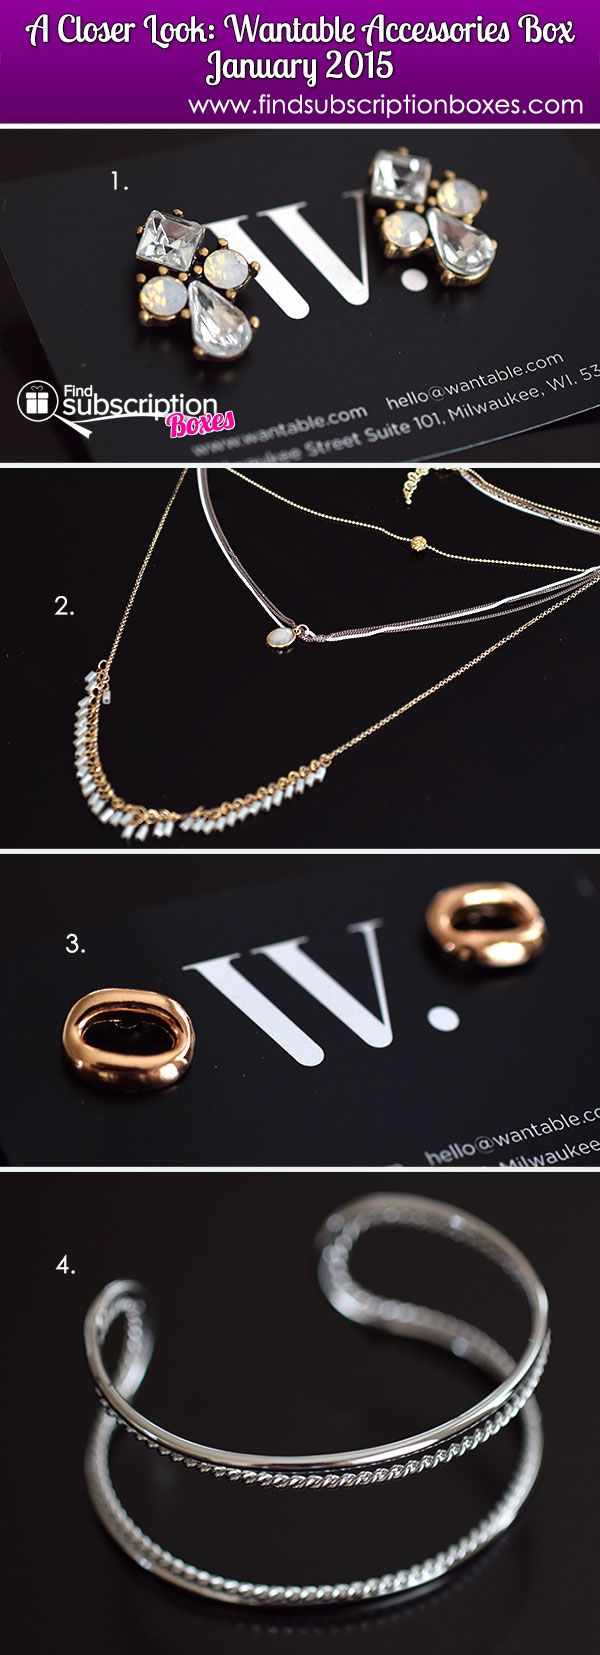 Check out the lovely metal toned items in our Wantable Accessories January 2015 Box - these are perfect for adding a little sparkle and shine to outfits! http://www.findsubscriptionboxes.com/a-closer-look/wantable-accessories-january-2015-box-review-022015/ @wantable